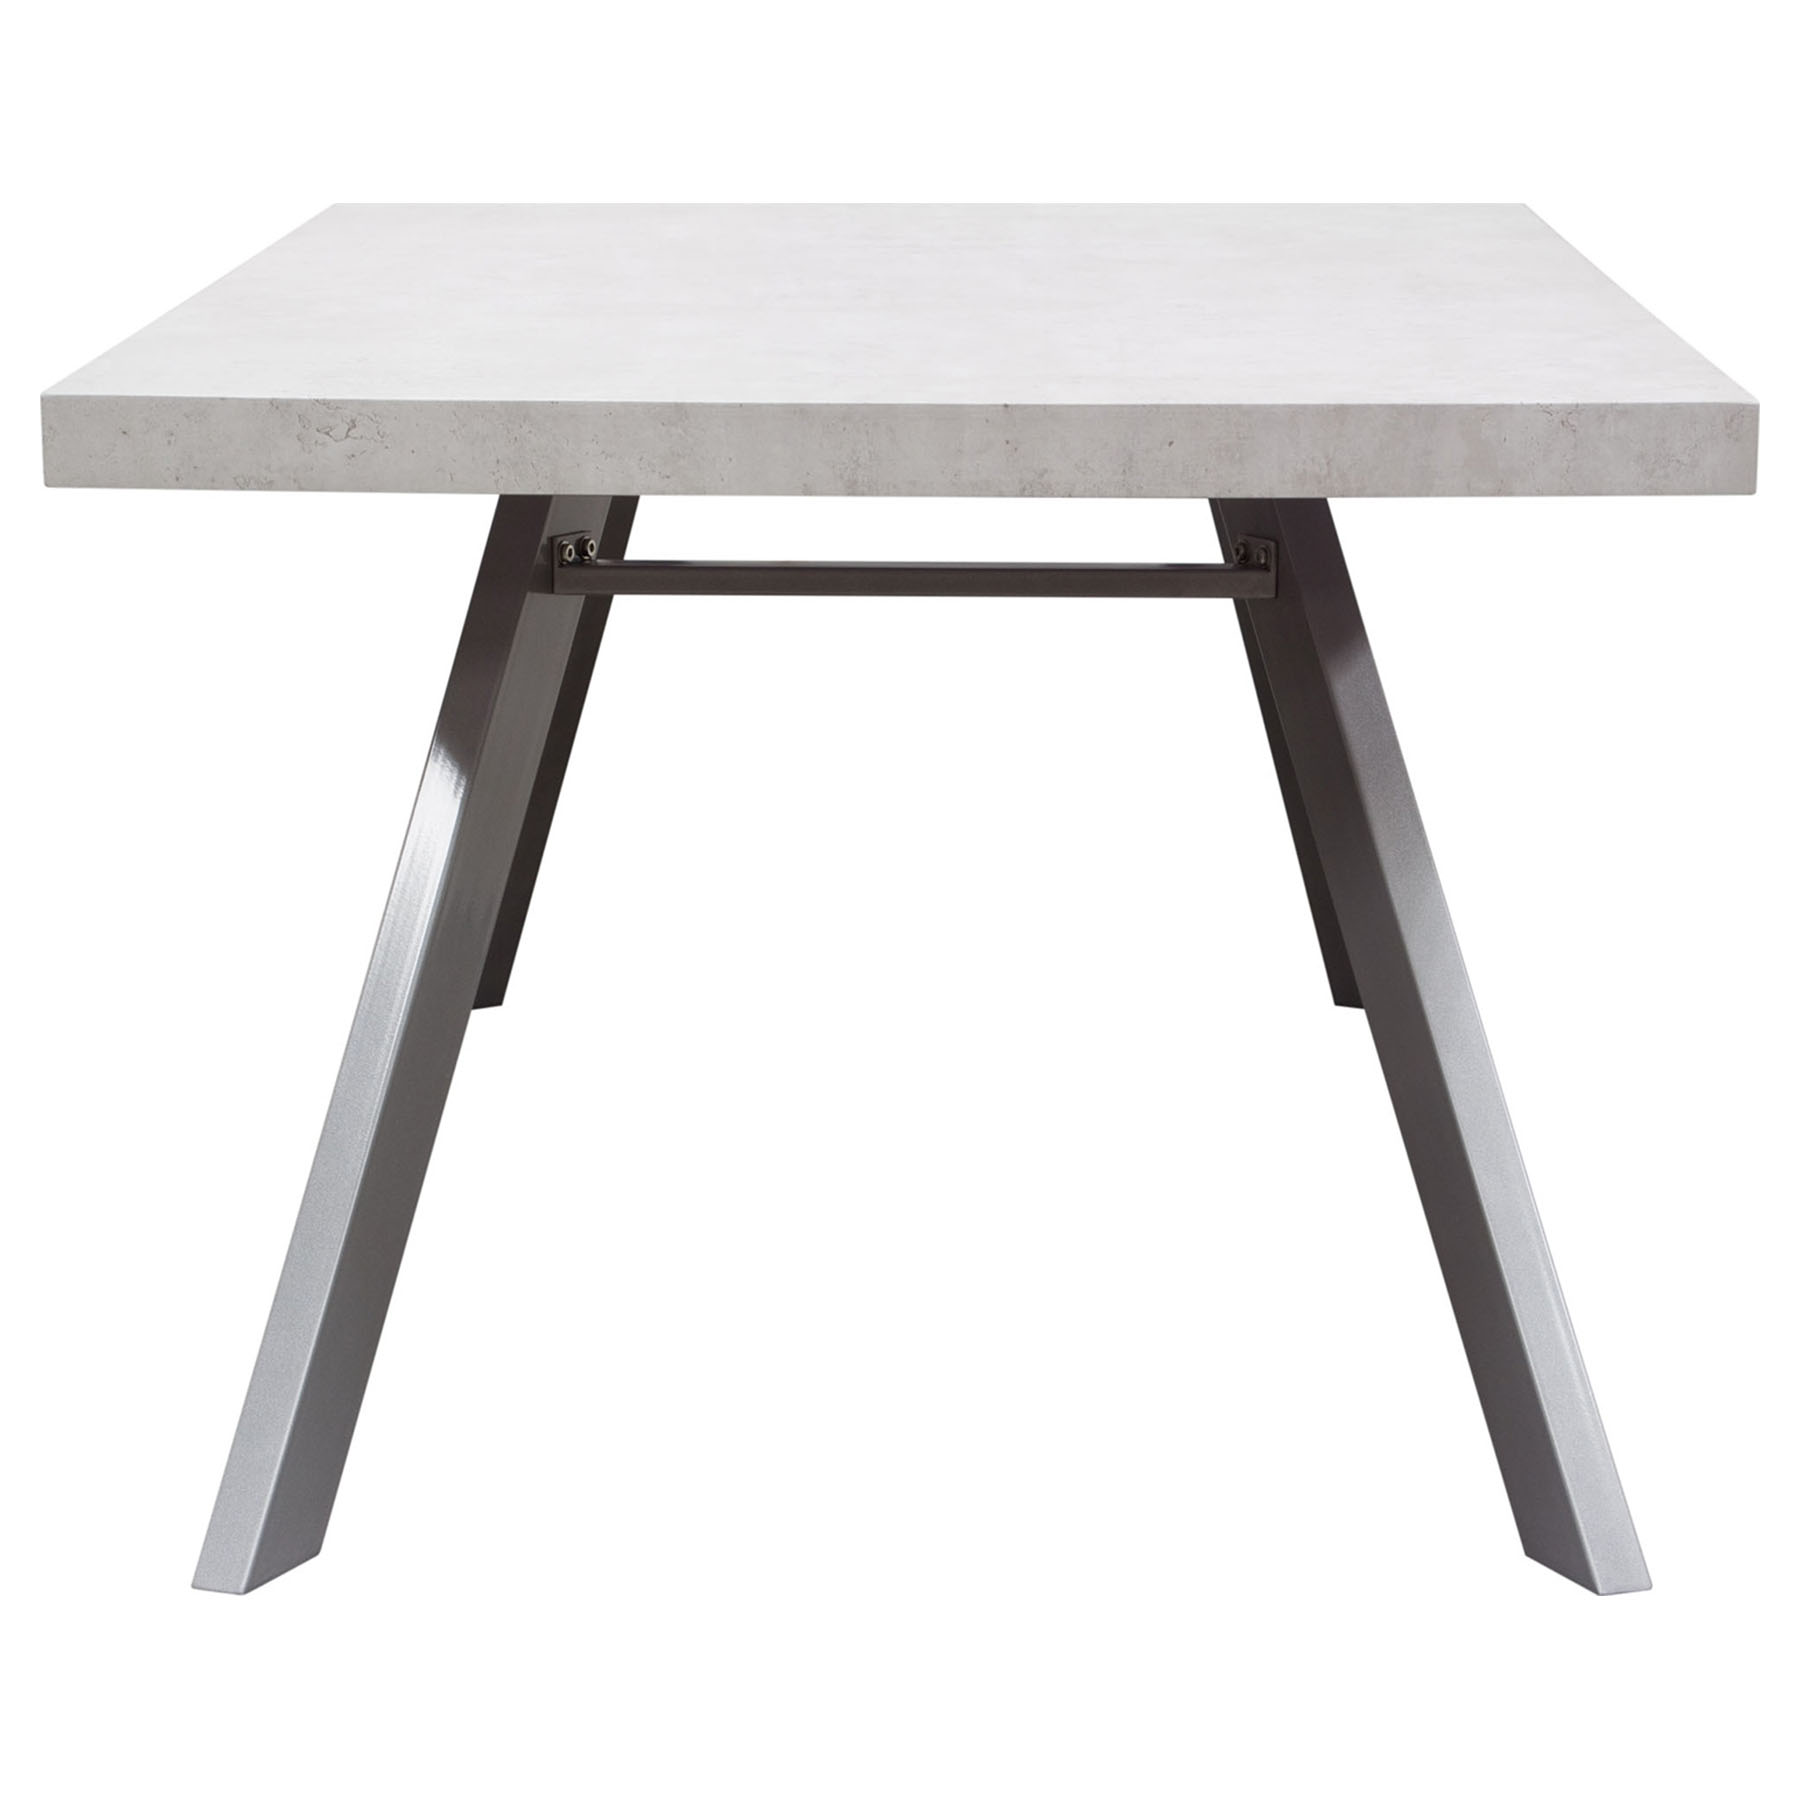 Carrera rectangular dining table white dcg stores for Table carrera